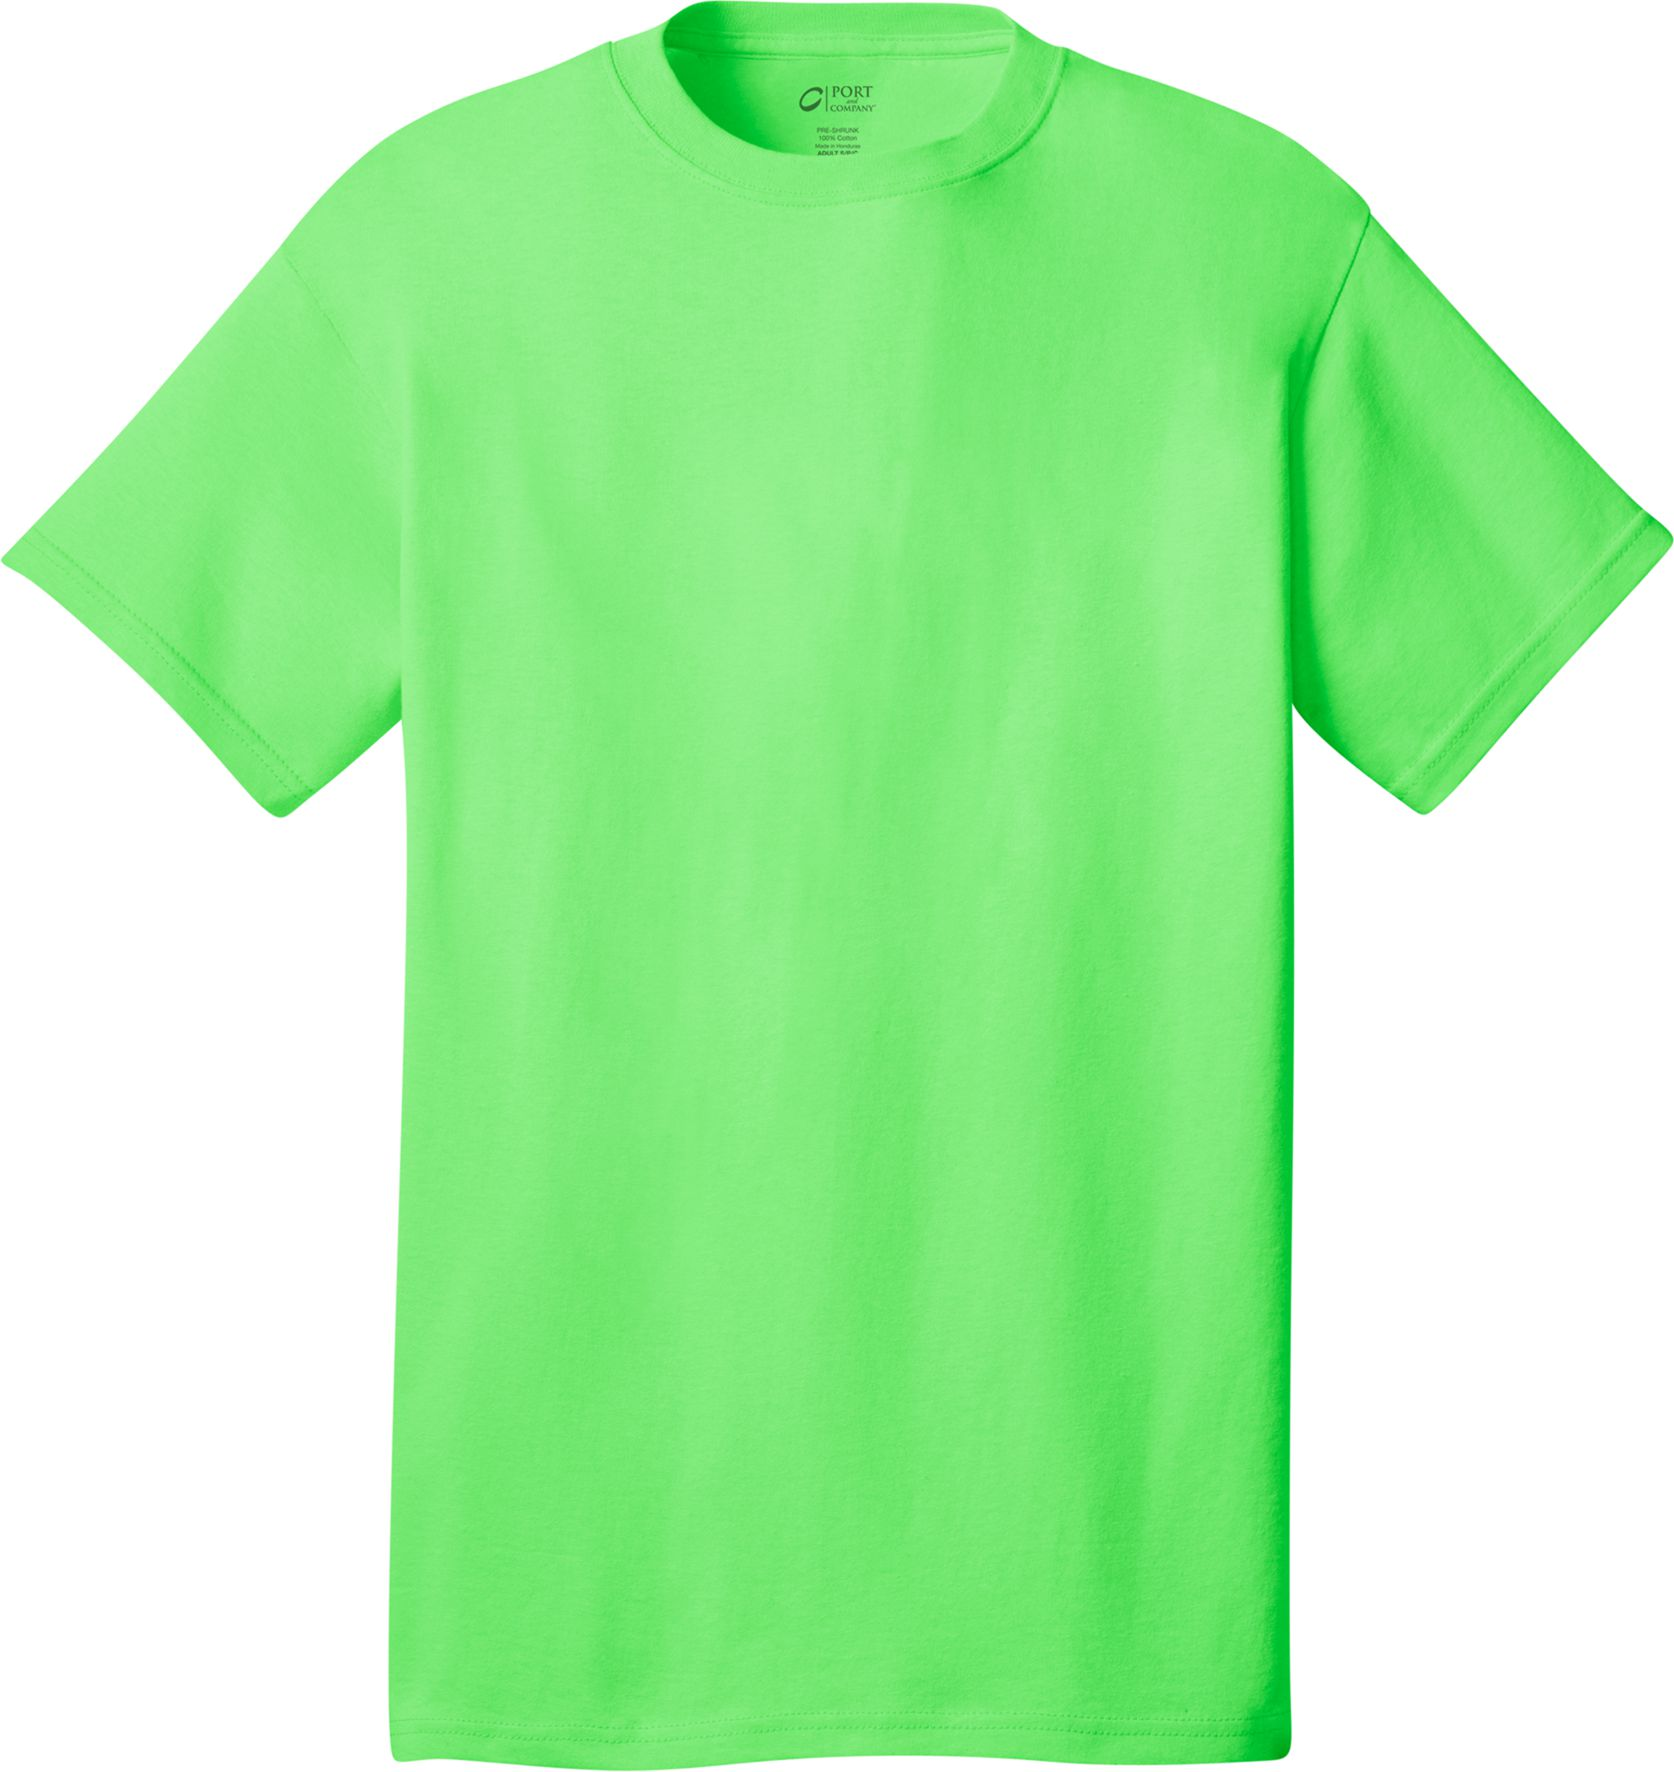 Neon Green Shirt lime green t shirt related keywords suggestions ...